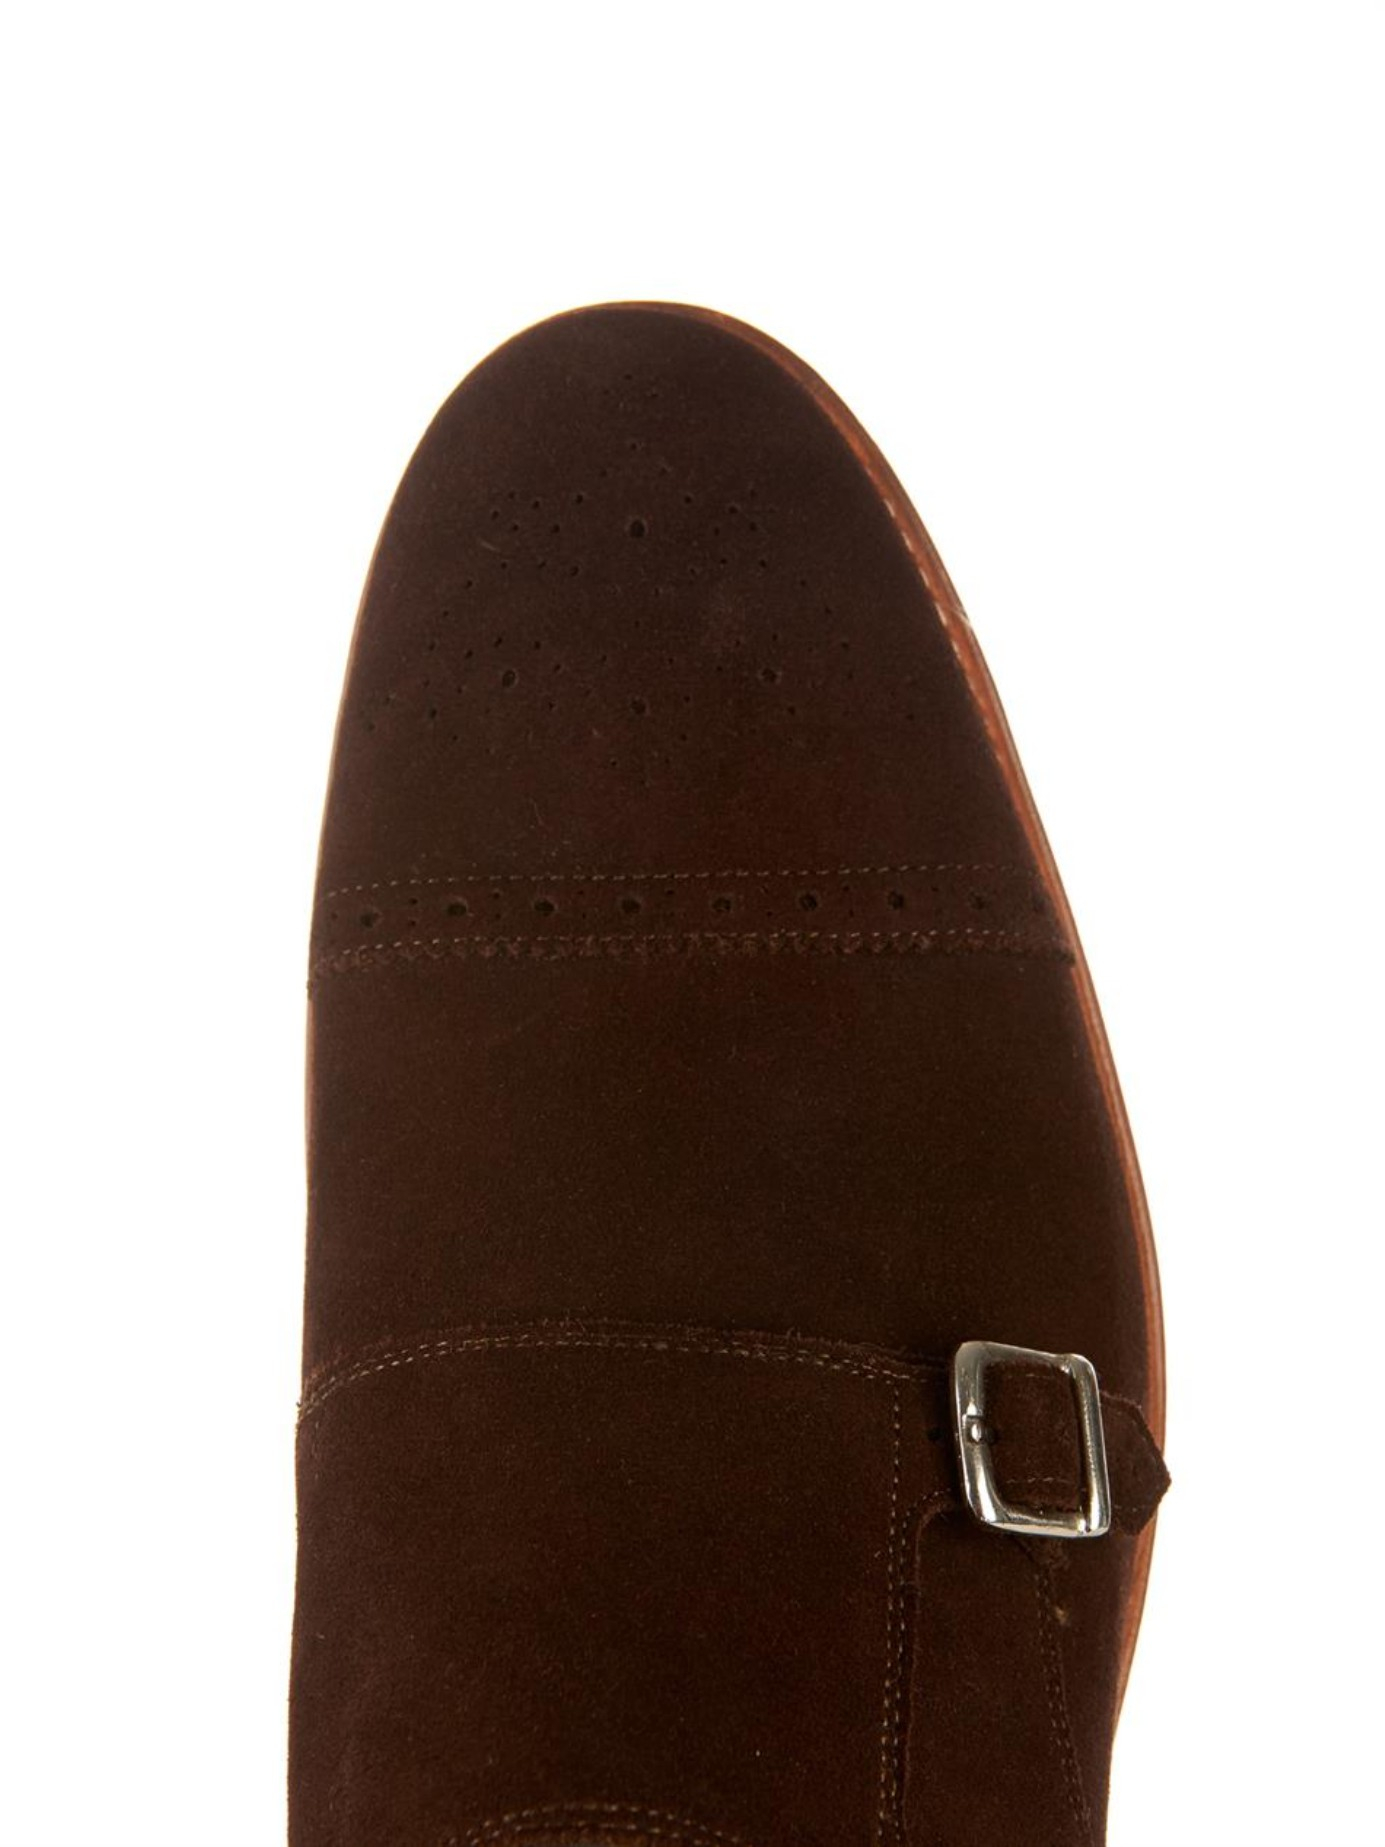 Foot The Coacher Ellery Monk-Strap Suede Shoes in Brown for Men